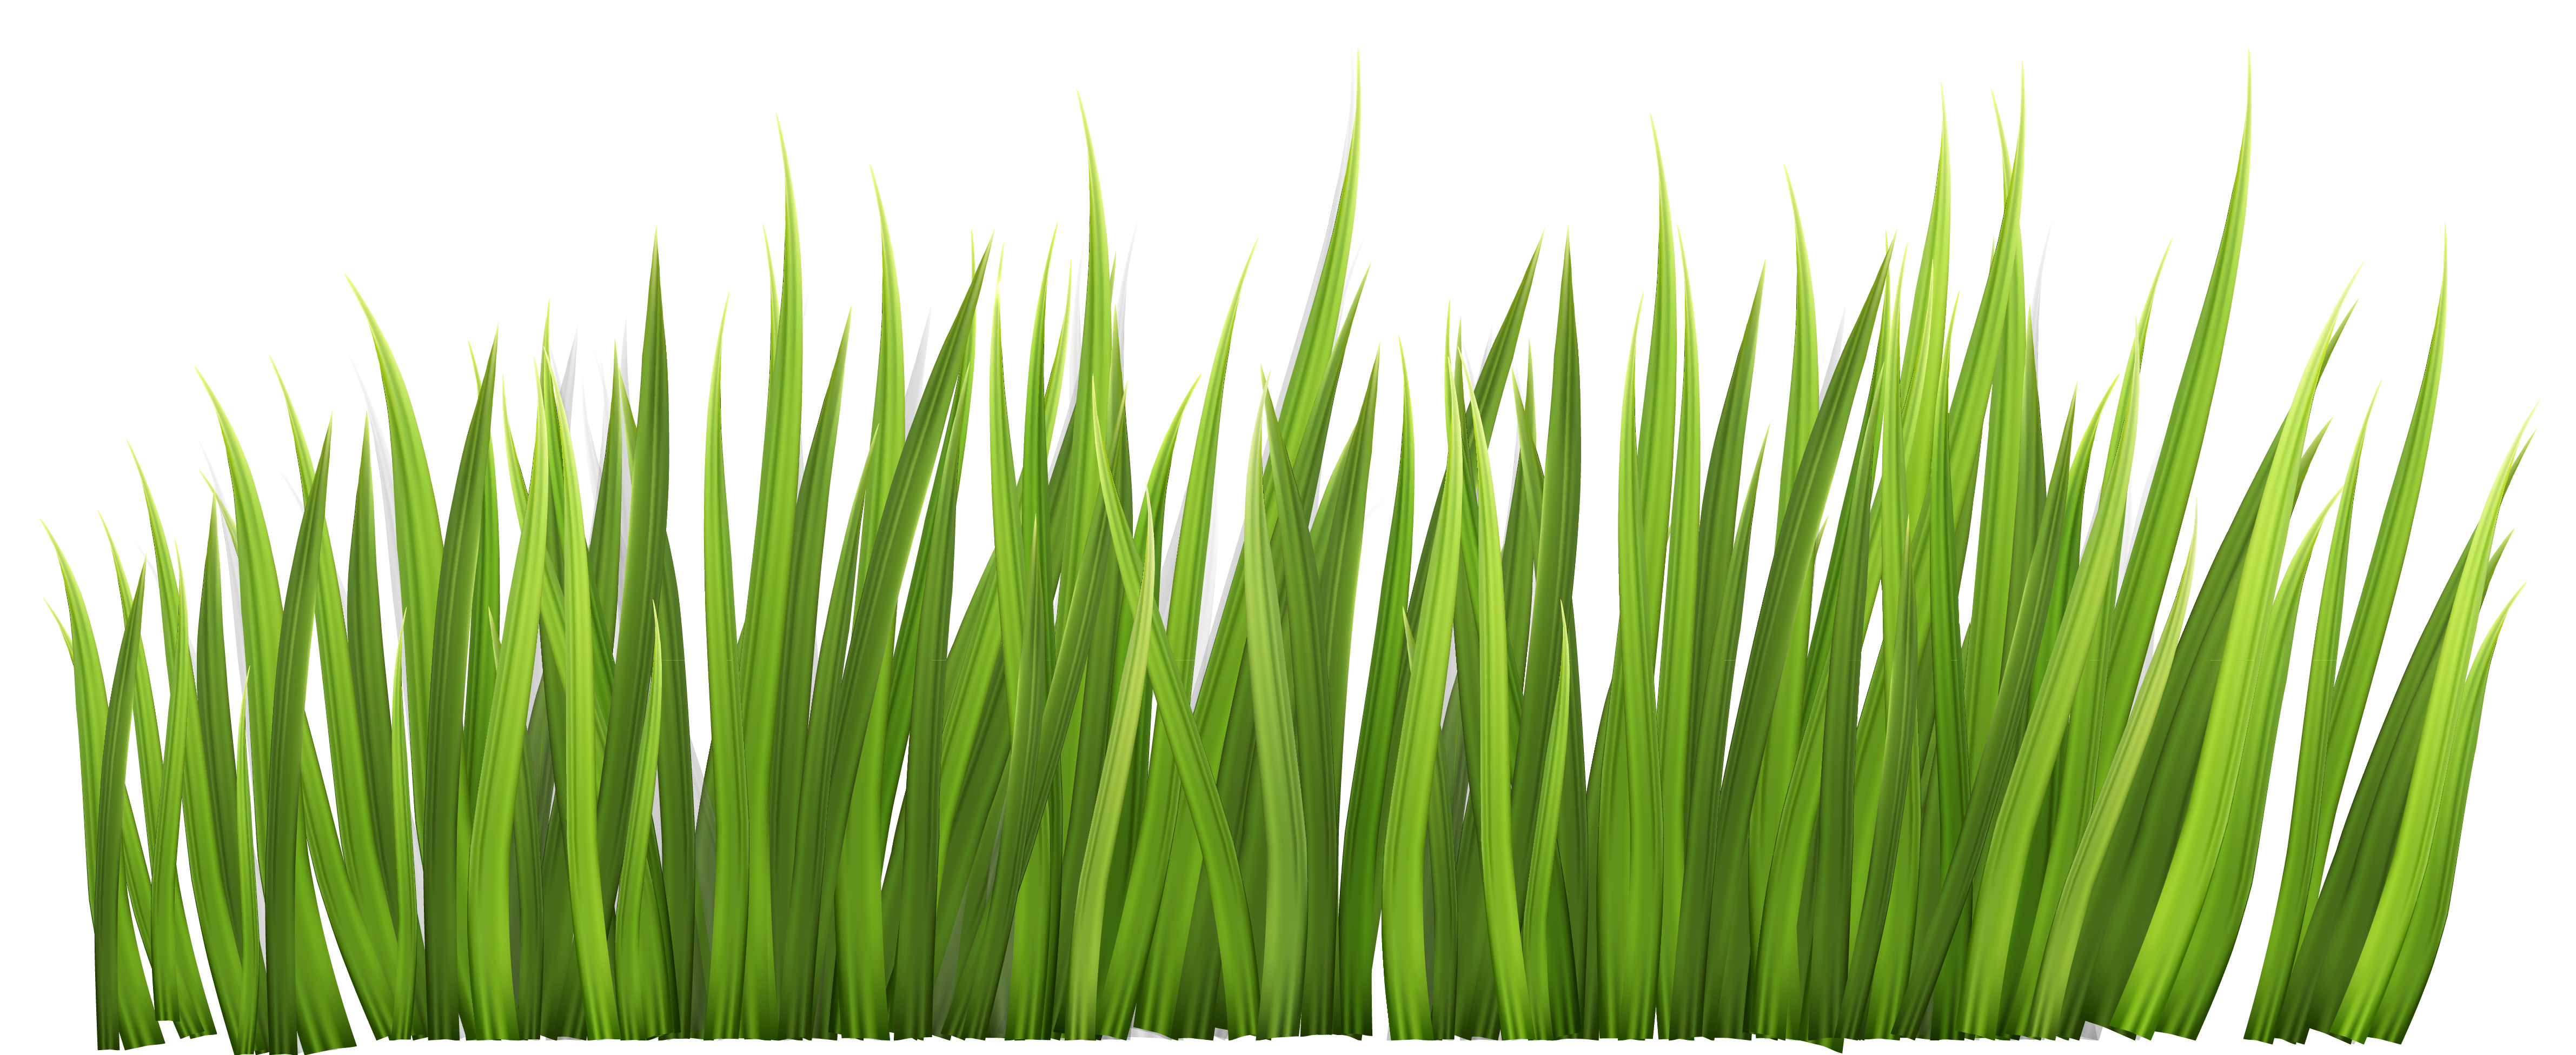 Grass blade texture png. Exellent view full size